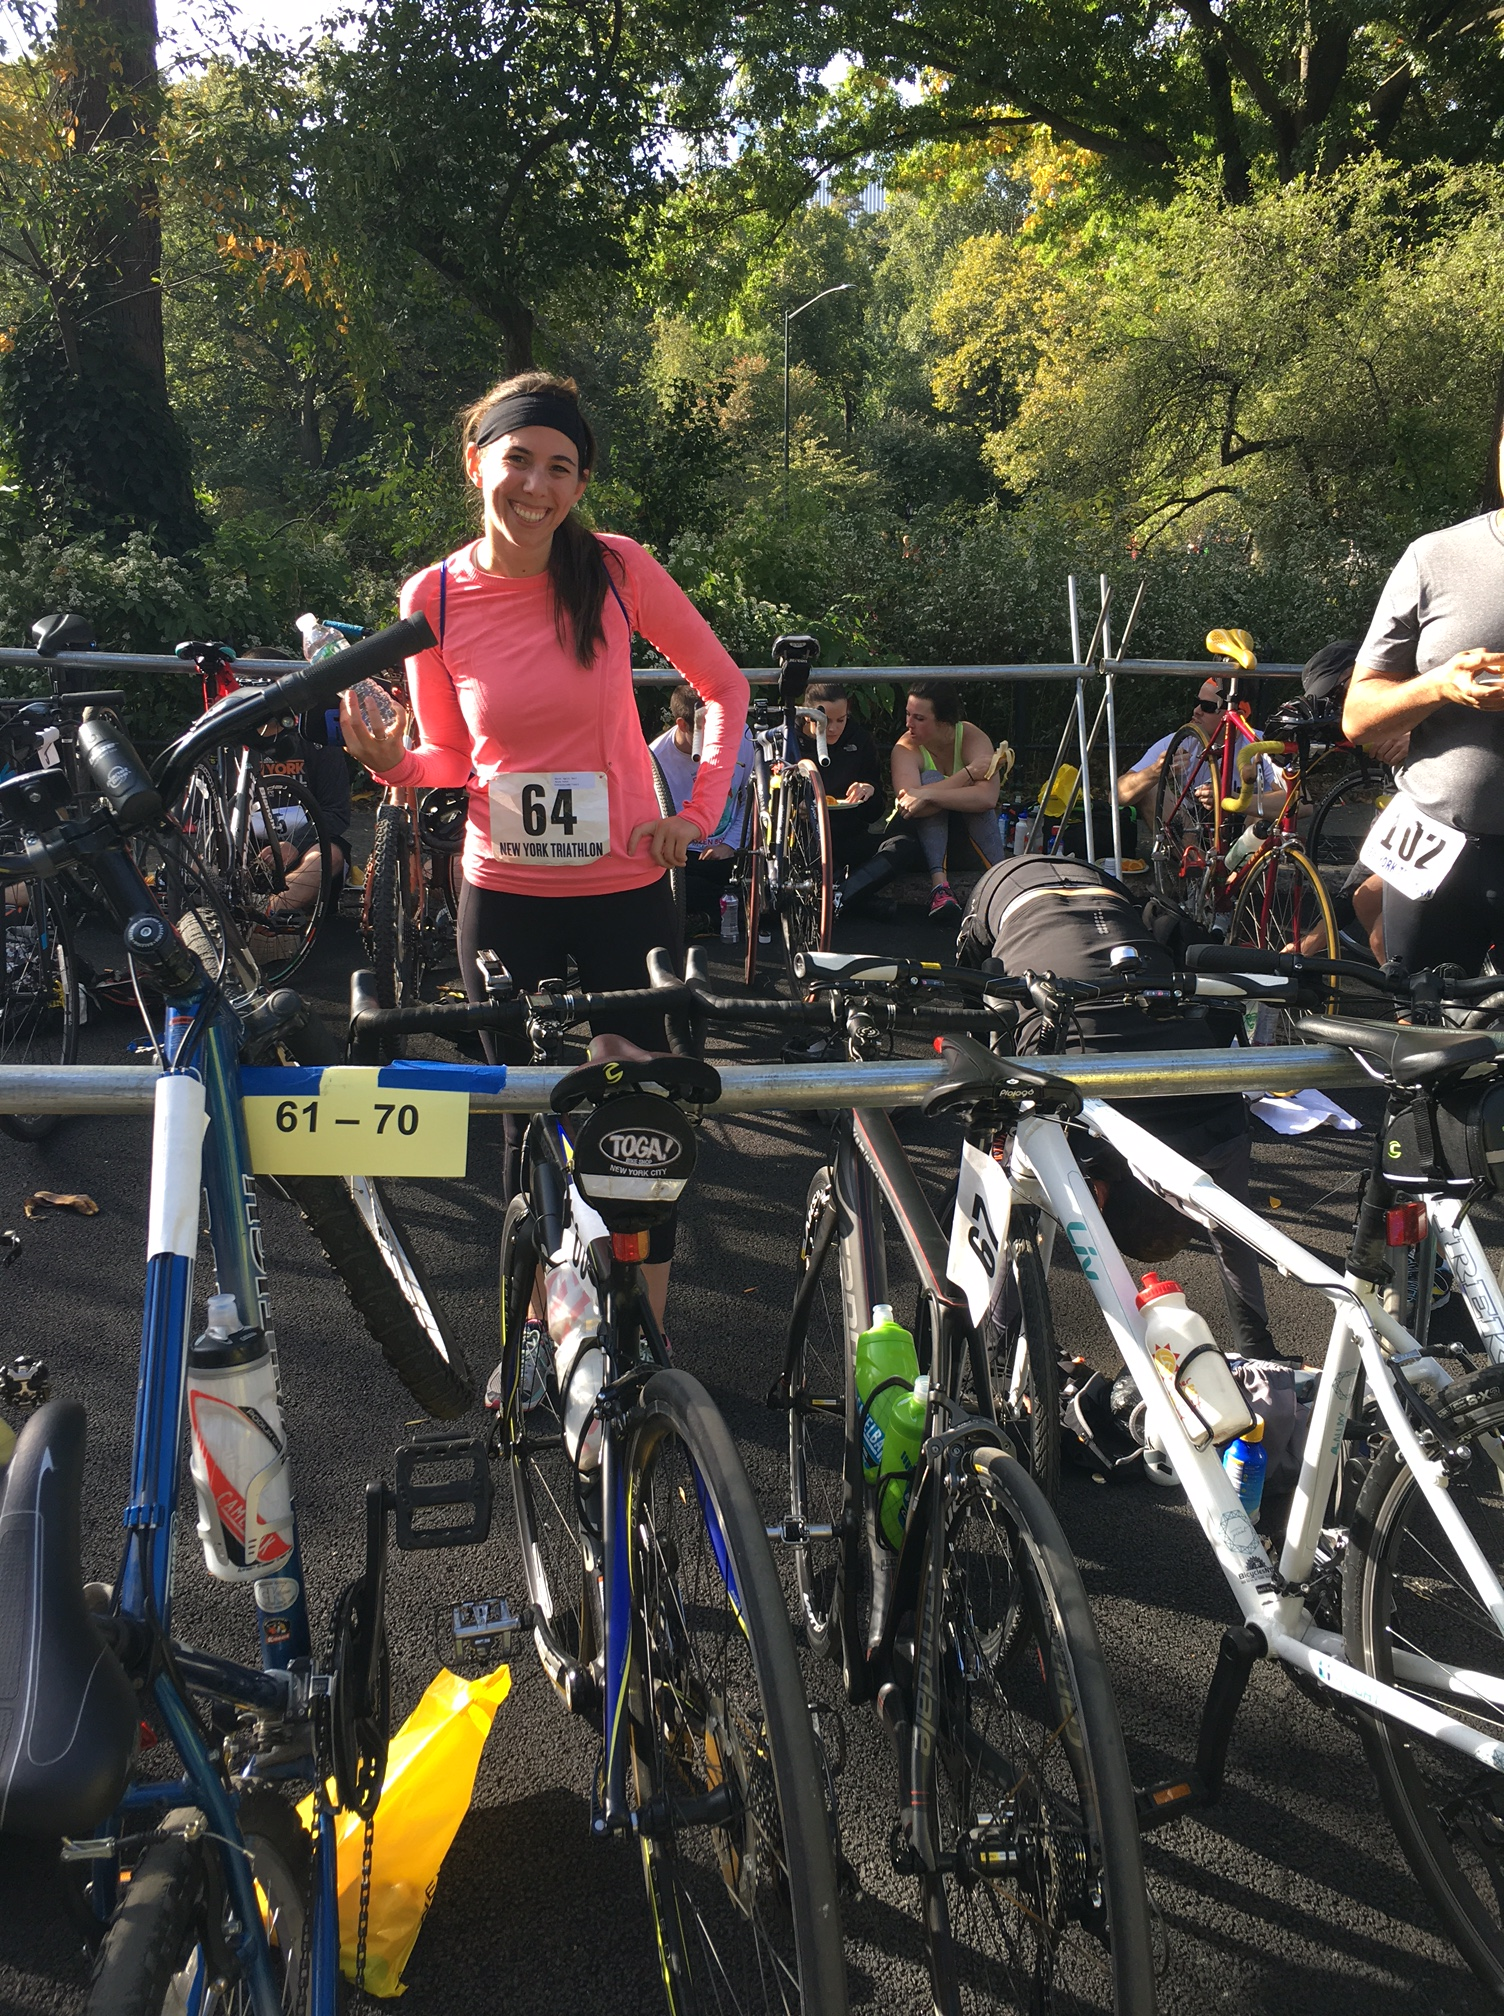 transition area of the NYC Duathlon